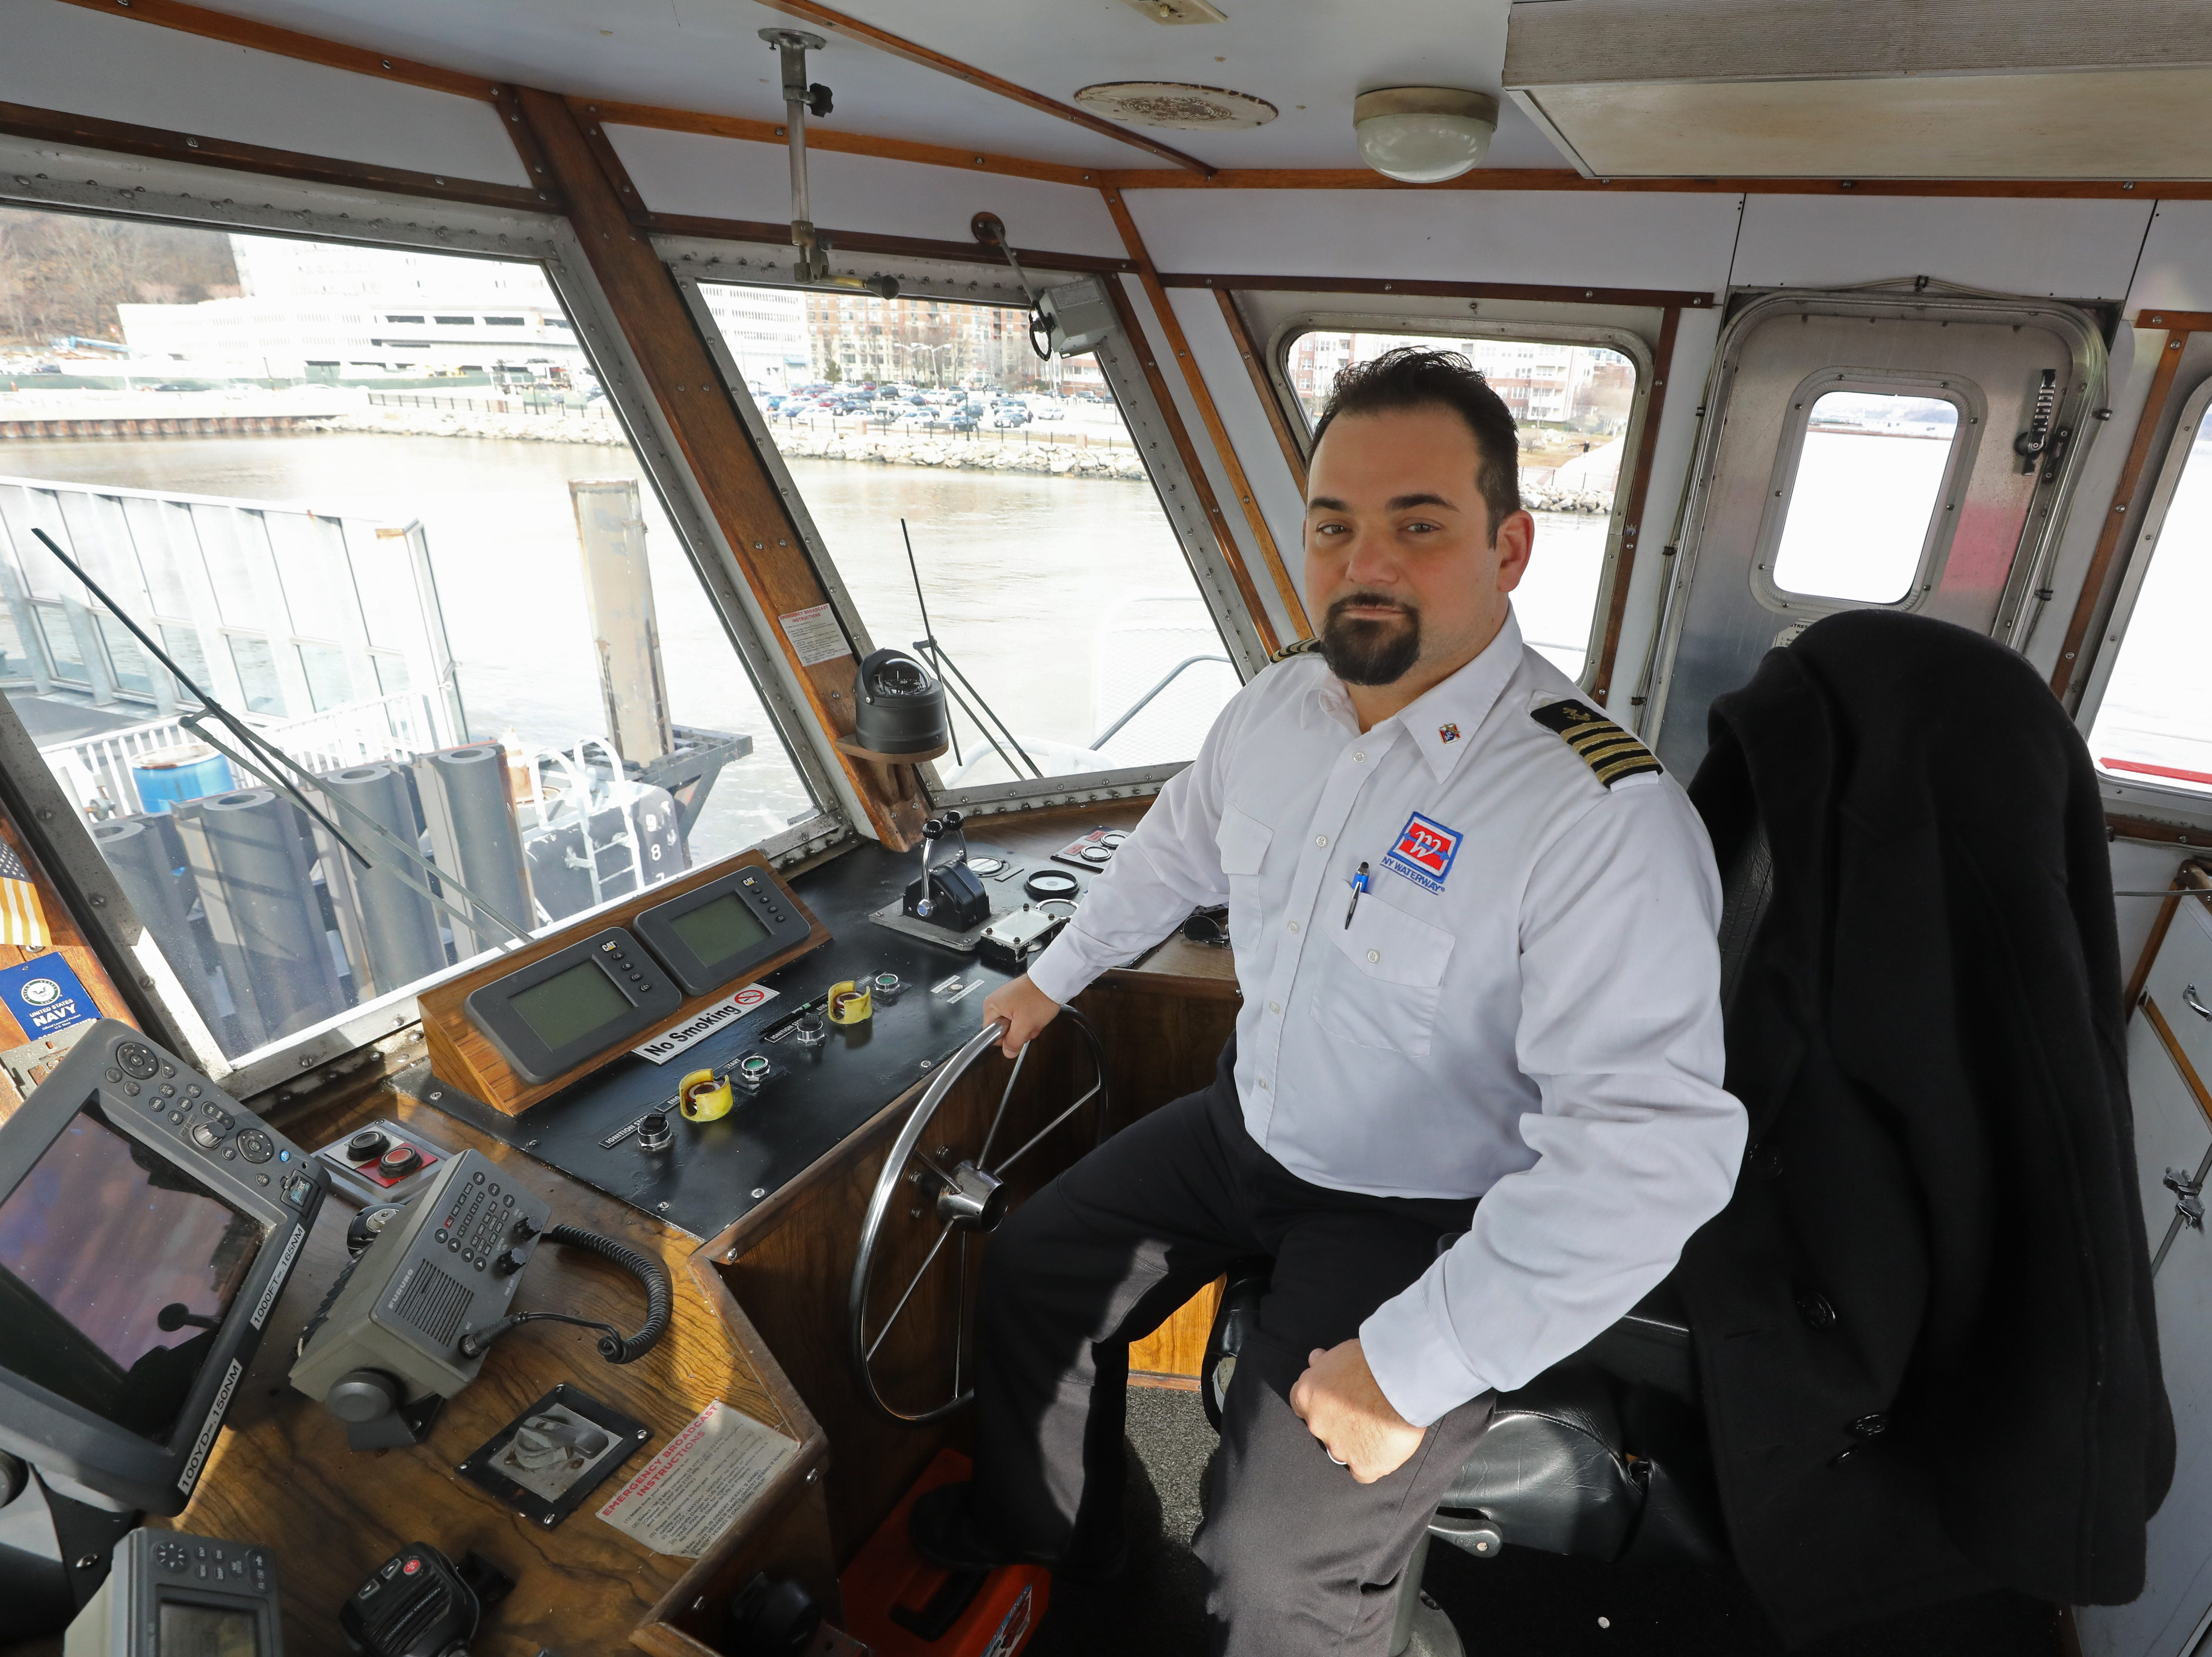 Captain Vincent Lombardi steered his ferry the Thomas Jefferson to the landing site of the downed airliner within three minutes of leaving the pier in Manhattan, saving 54 people. Here he is in the wheelhouse of the Thomas Jefferson on January 9, 2019.